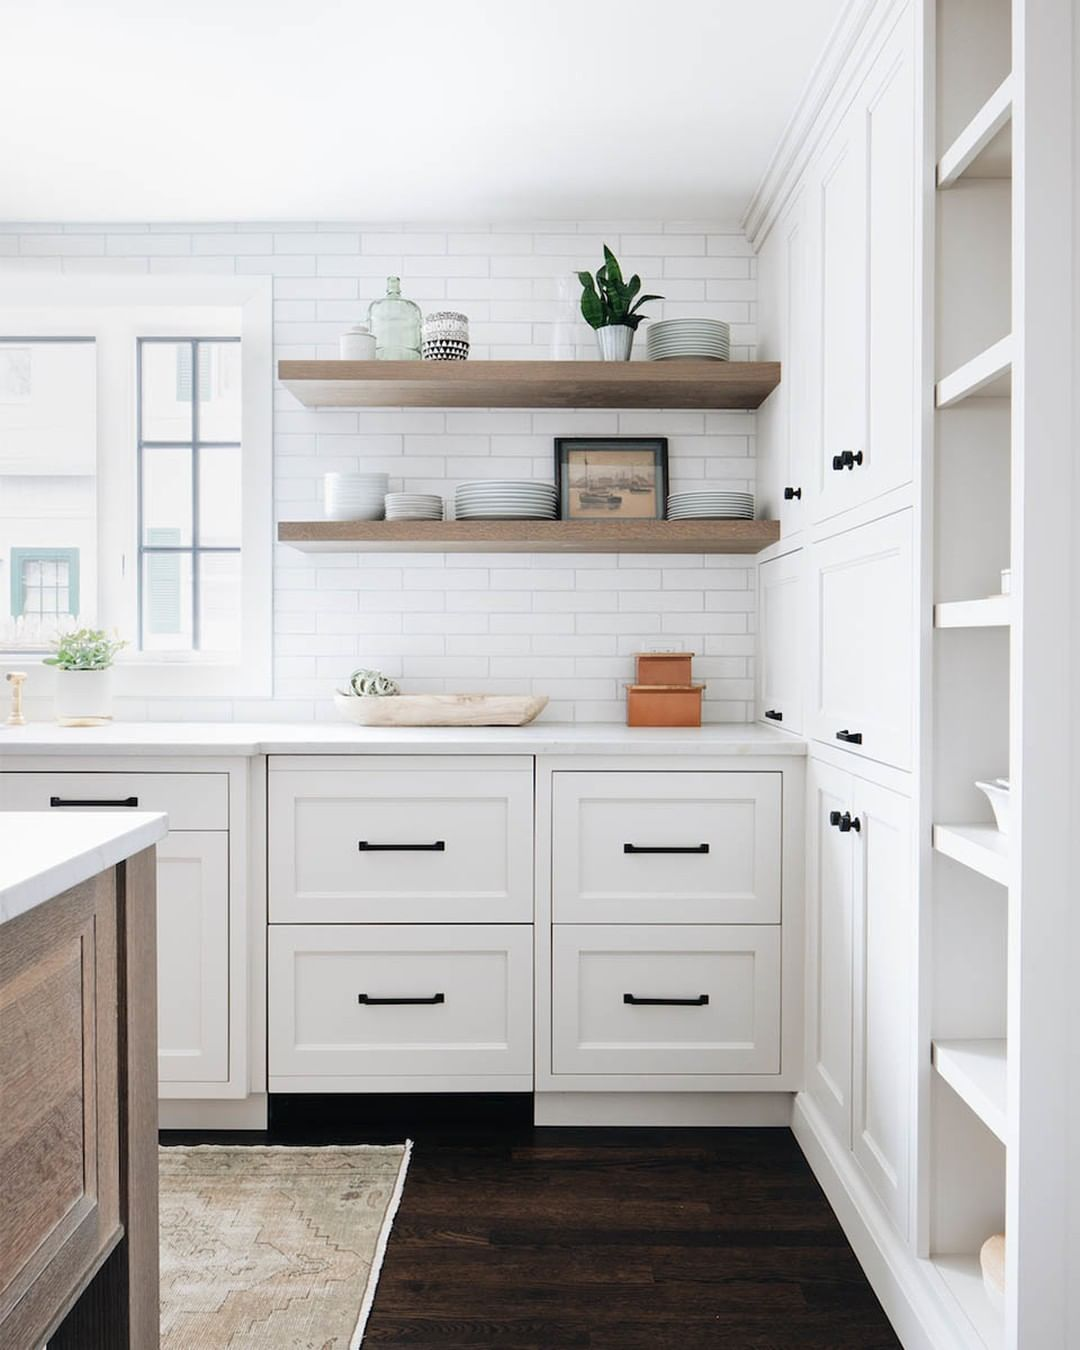 Kate Marker Interiors On Instagram Clean Kitchen Lines